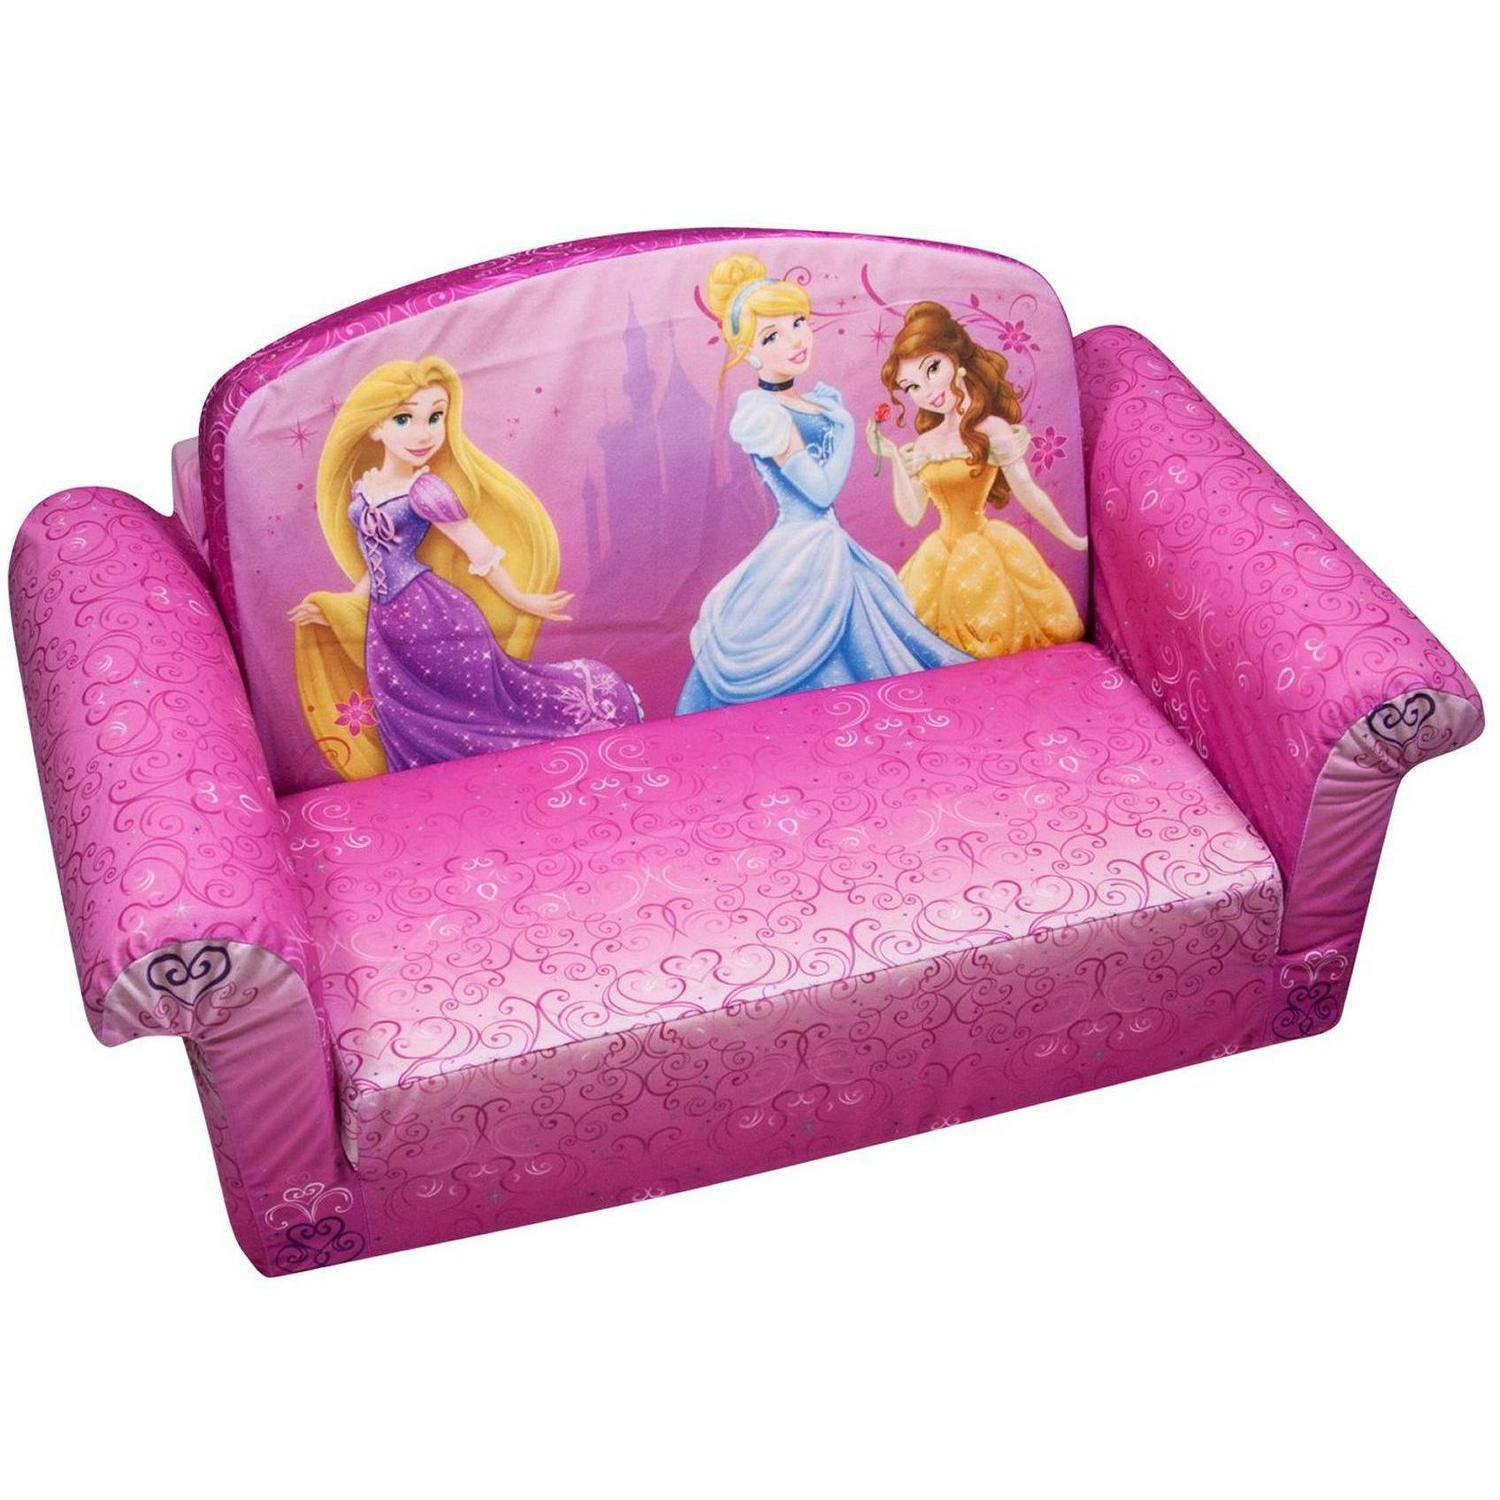 Marshmallow 2 In 1 Flip Open Sofa, Disney Princess – Walmart With Regard To Mickey Flip Sofas (Image 4 of 20)